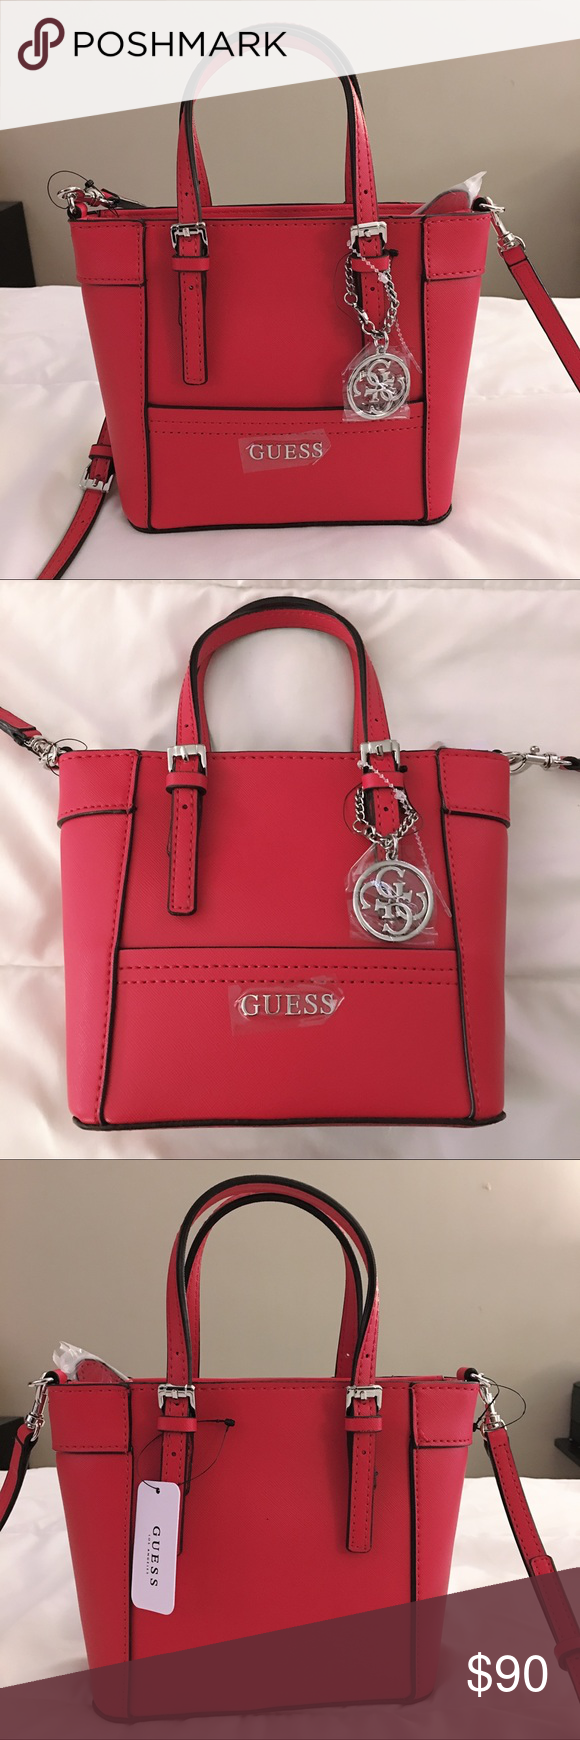 f0570b0a3026 I just added this listing on Poshmark  GUESS red delaney mini tote  crossbody bag.  shopmycloset  poshmark  fashion  shopping  style  forsale   Guess   ...